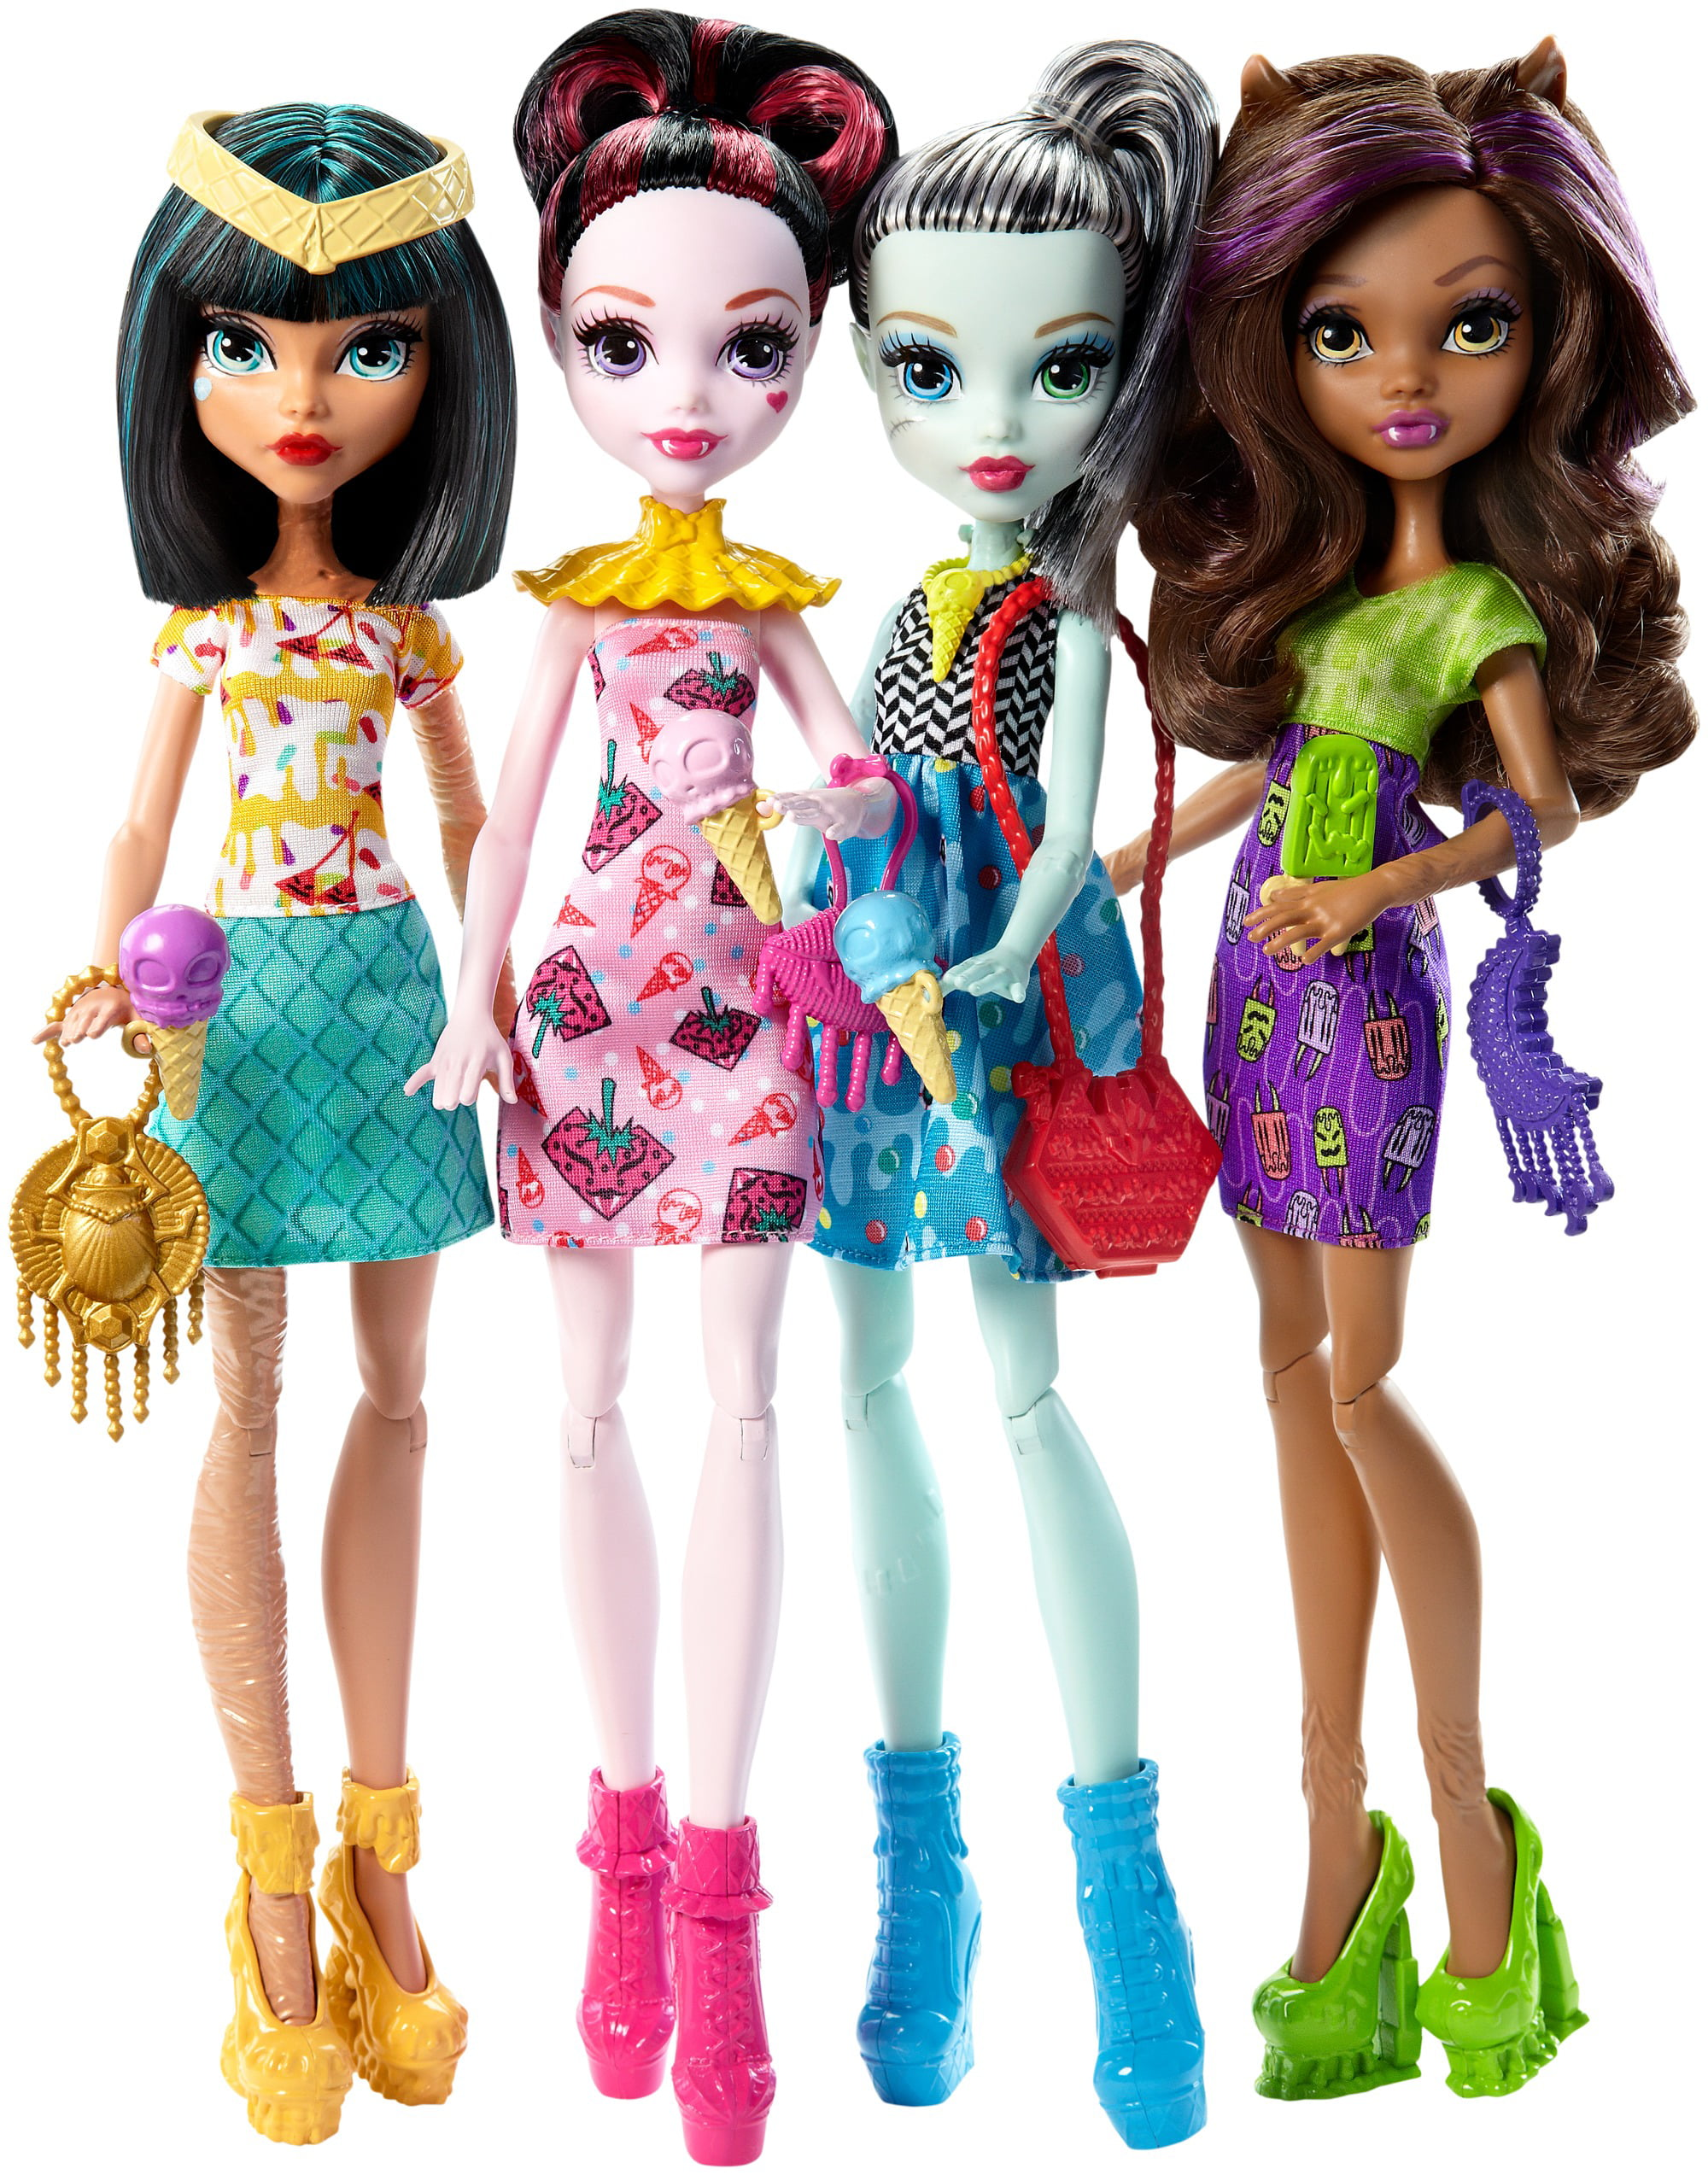 Monster High Ice Scream Ghouls Doll 4-Pack by MATTEL INC.